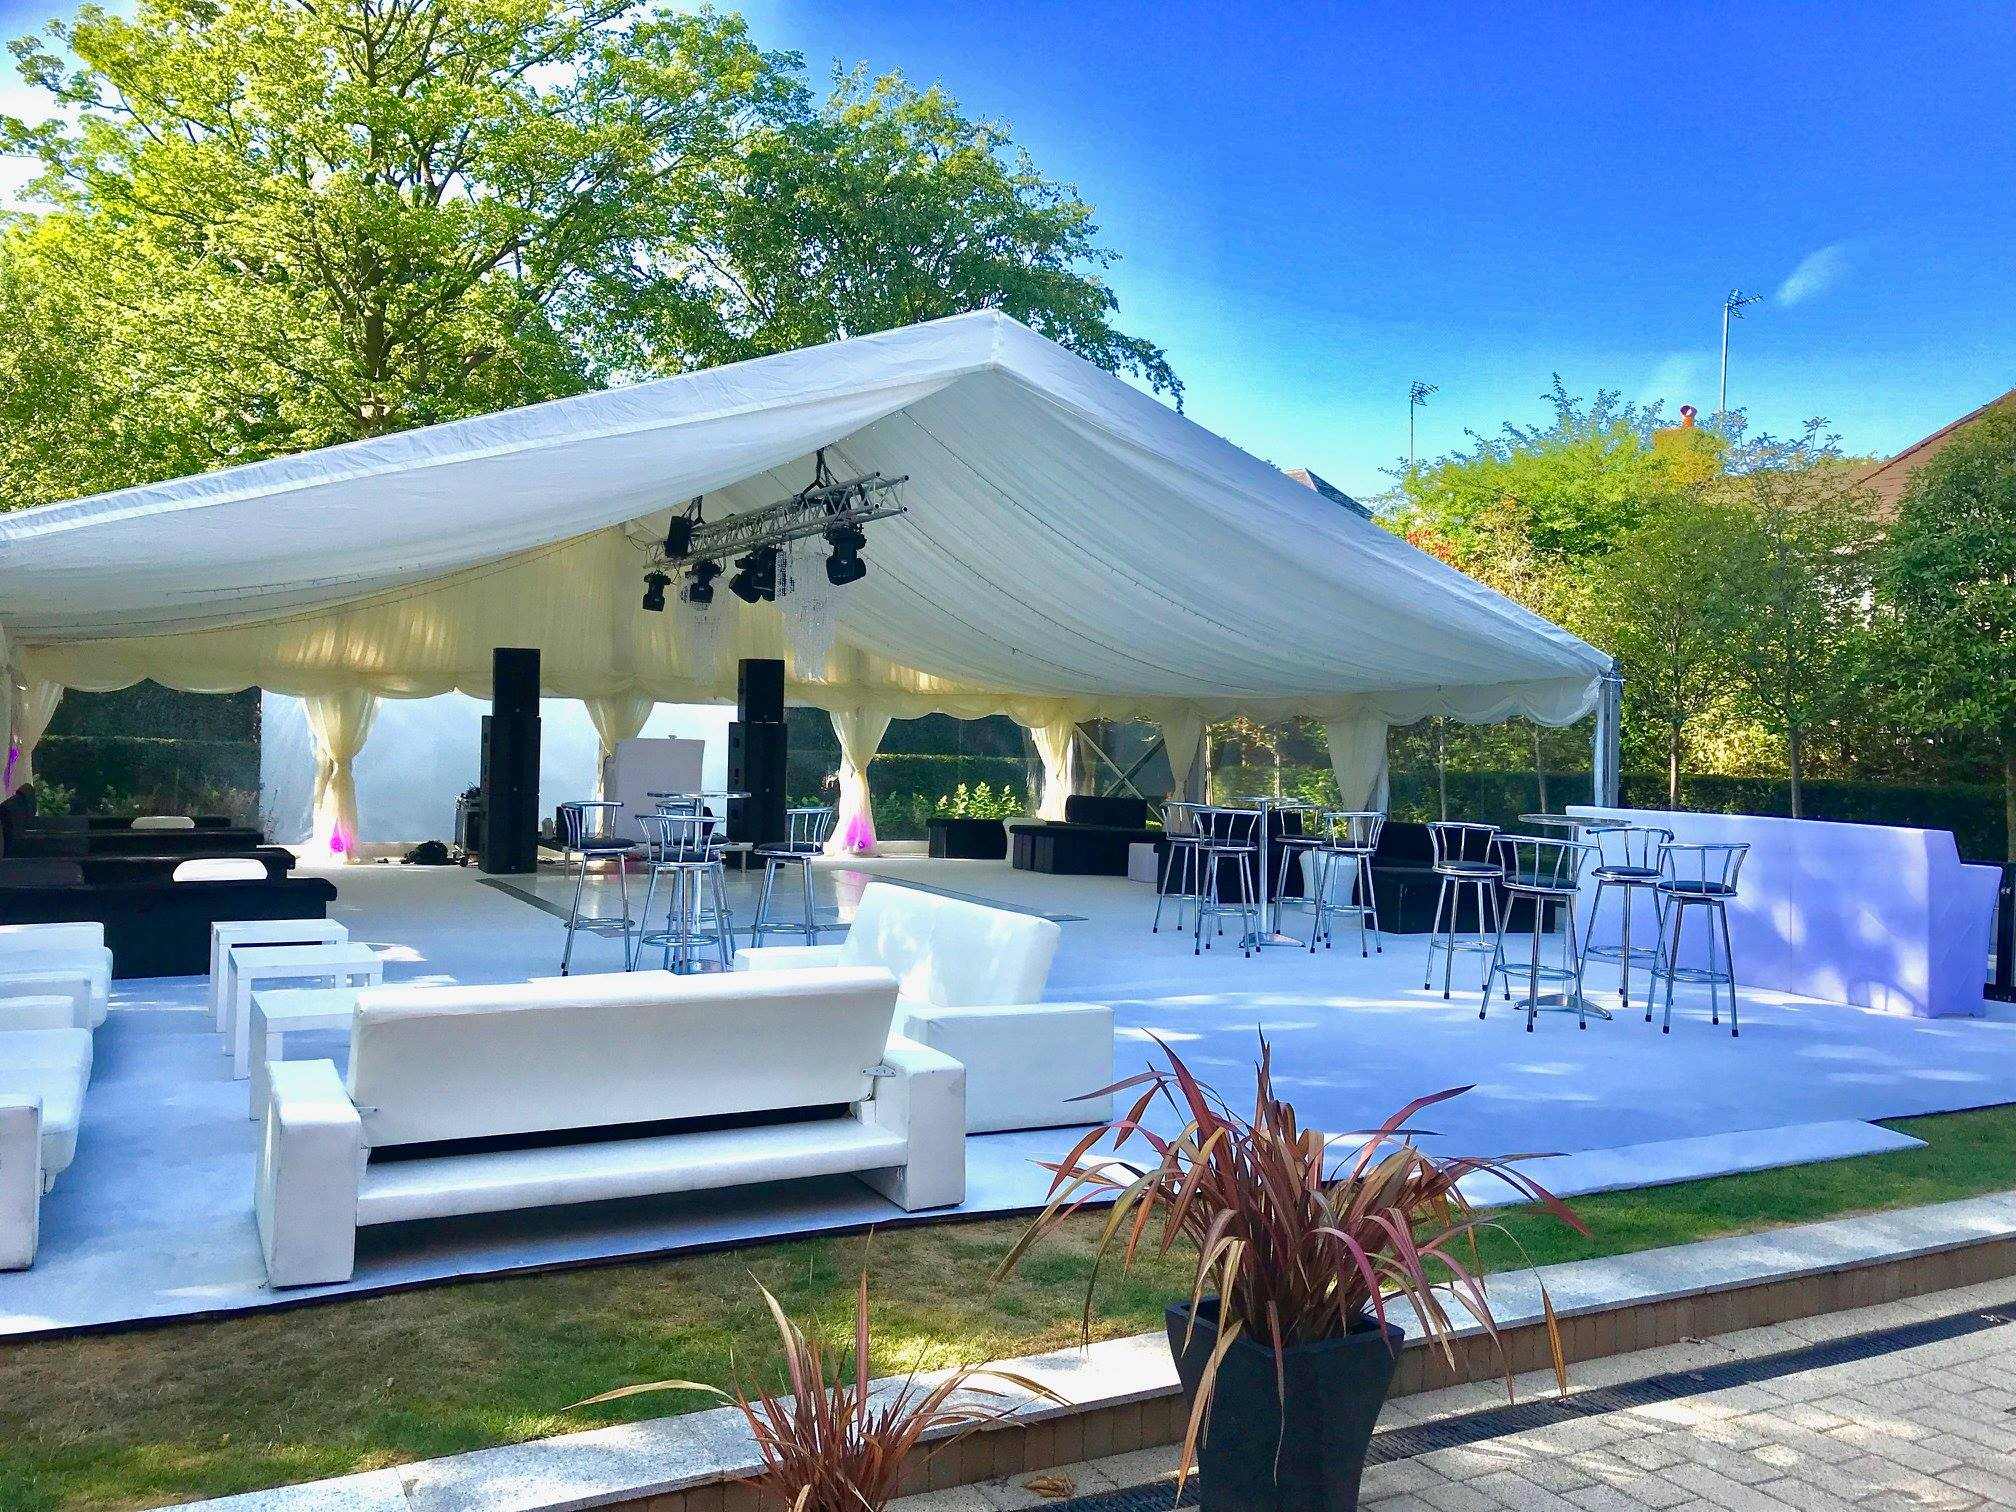 9 Reasons to hire a mobile bar for your next big event